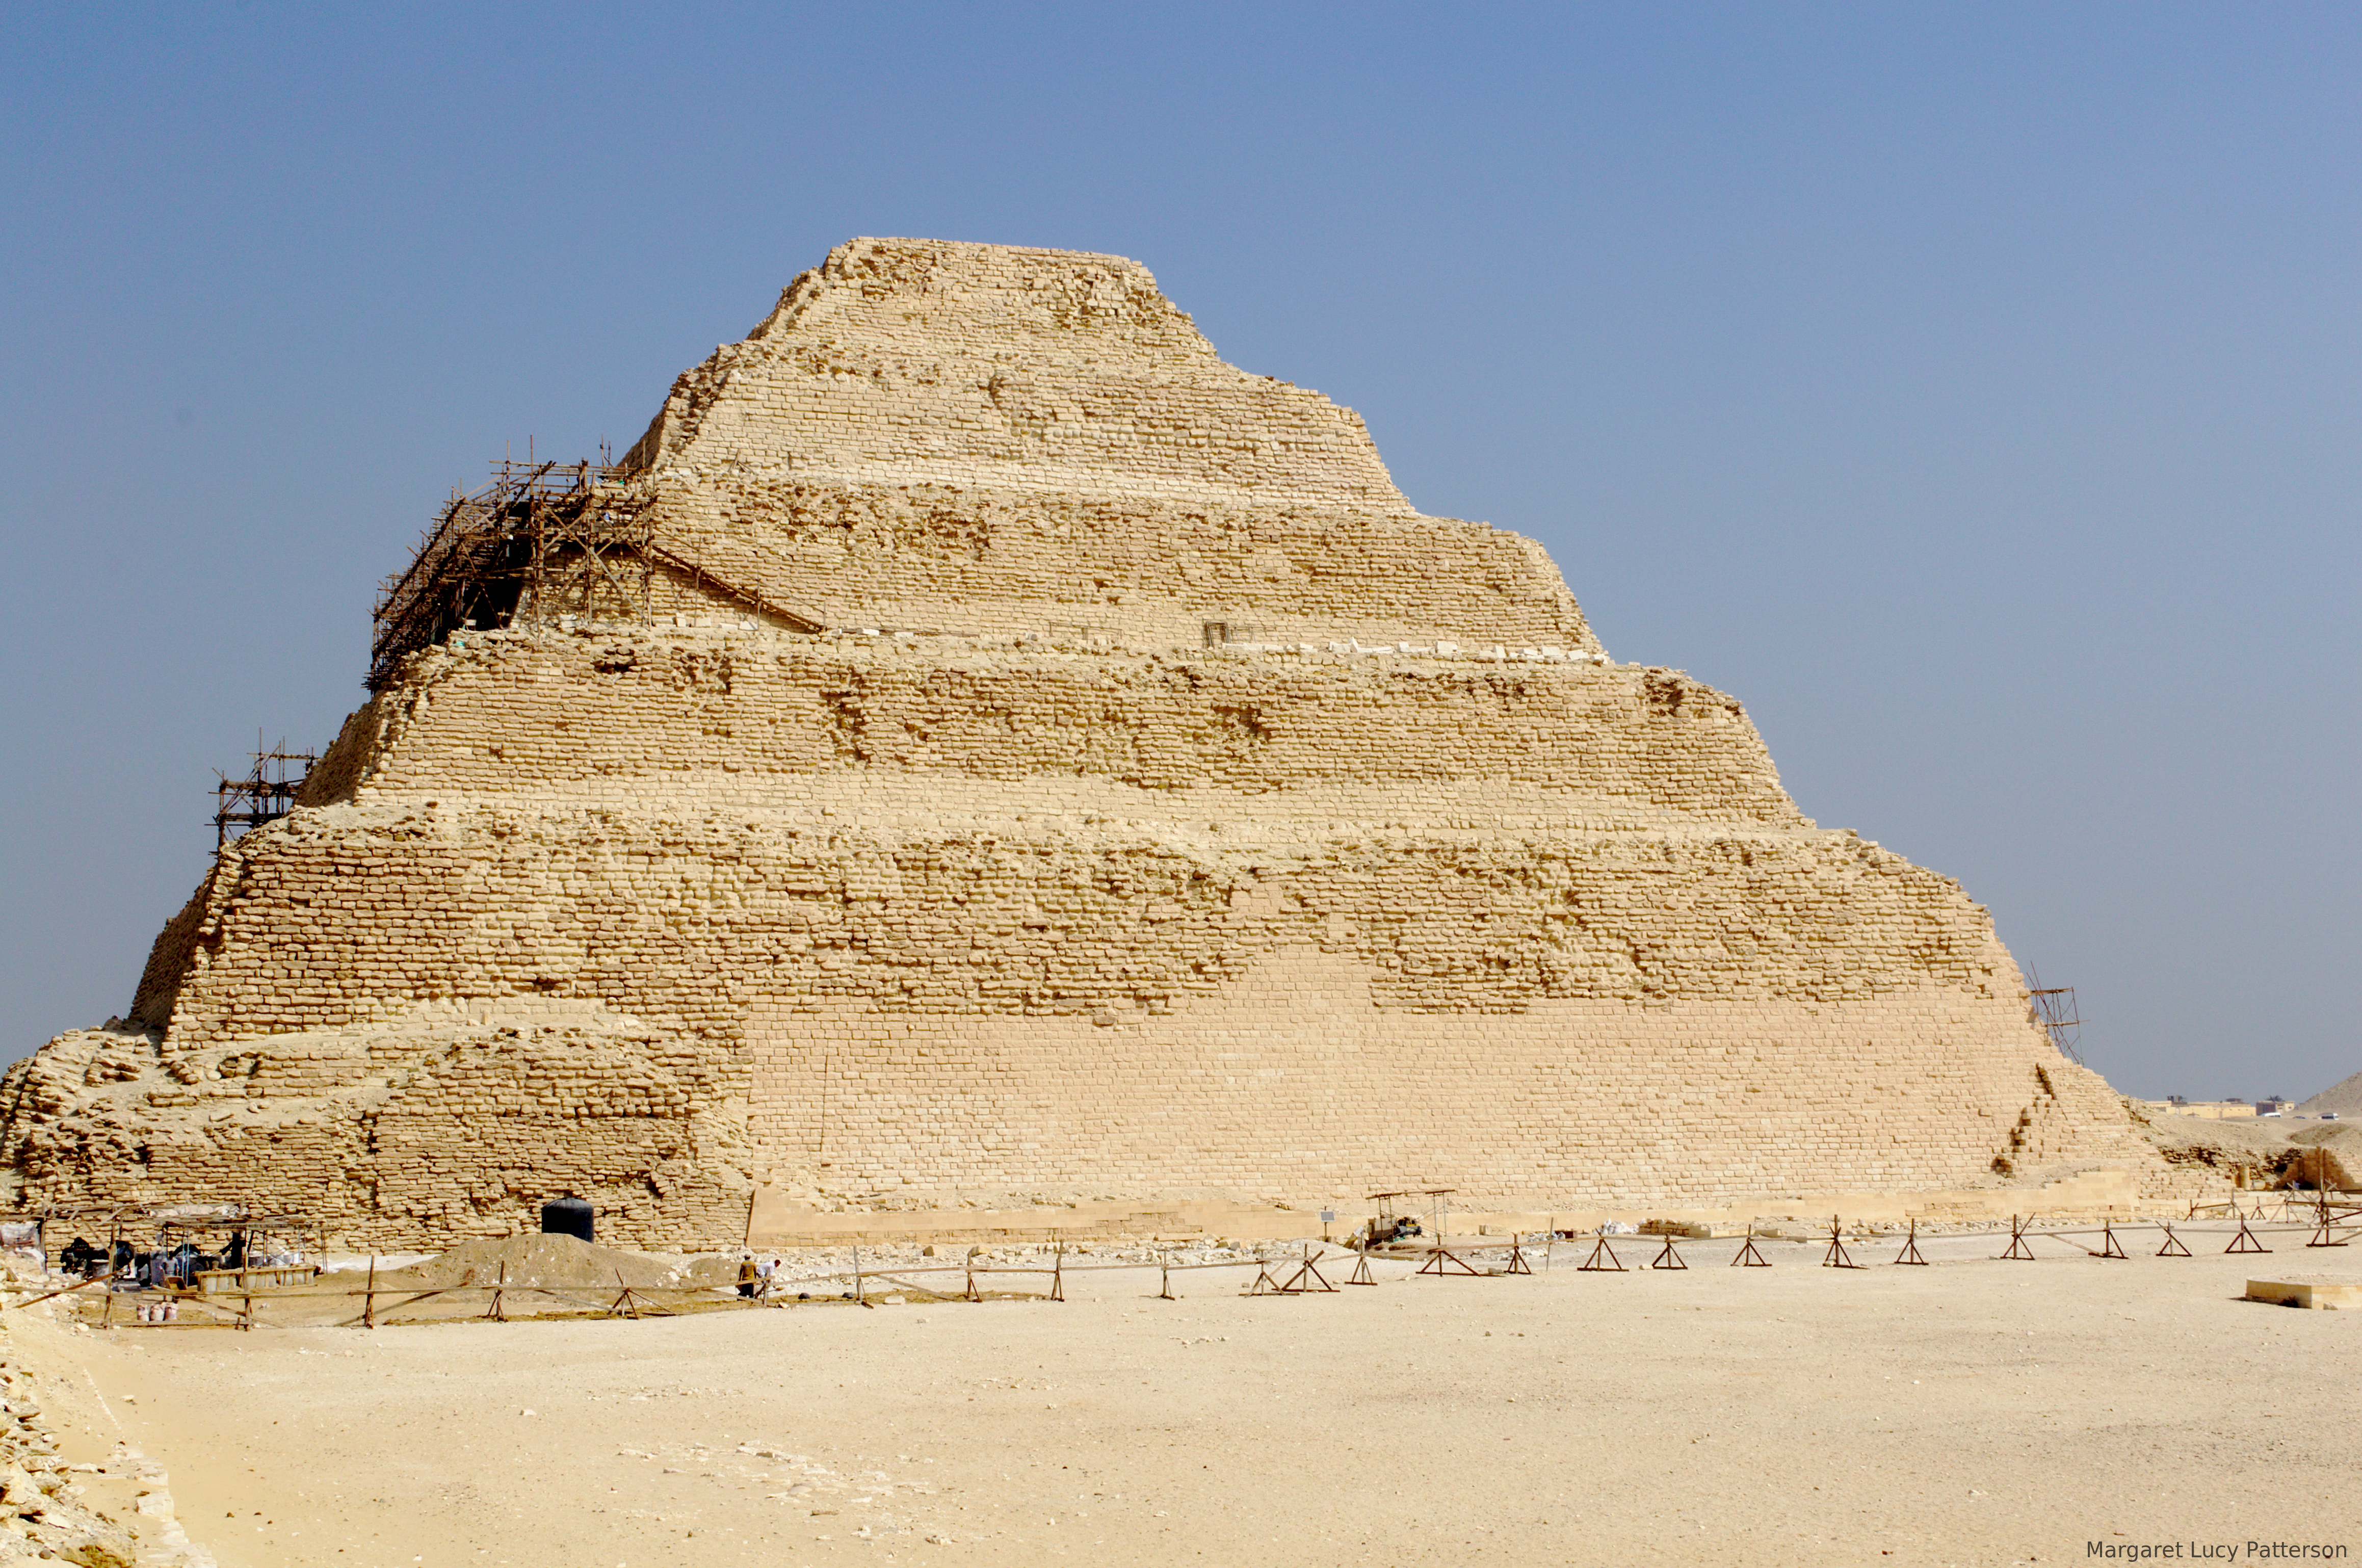 A photograph of the Step Pyramid at Saqqara.